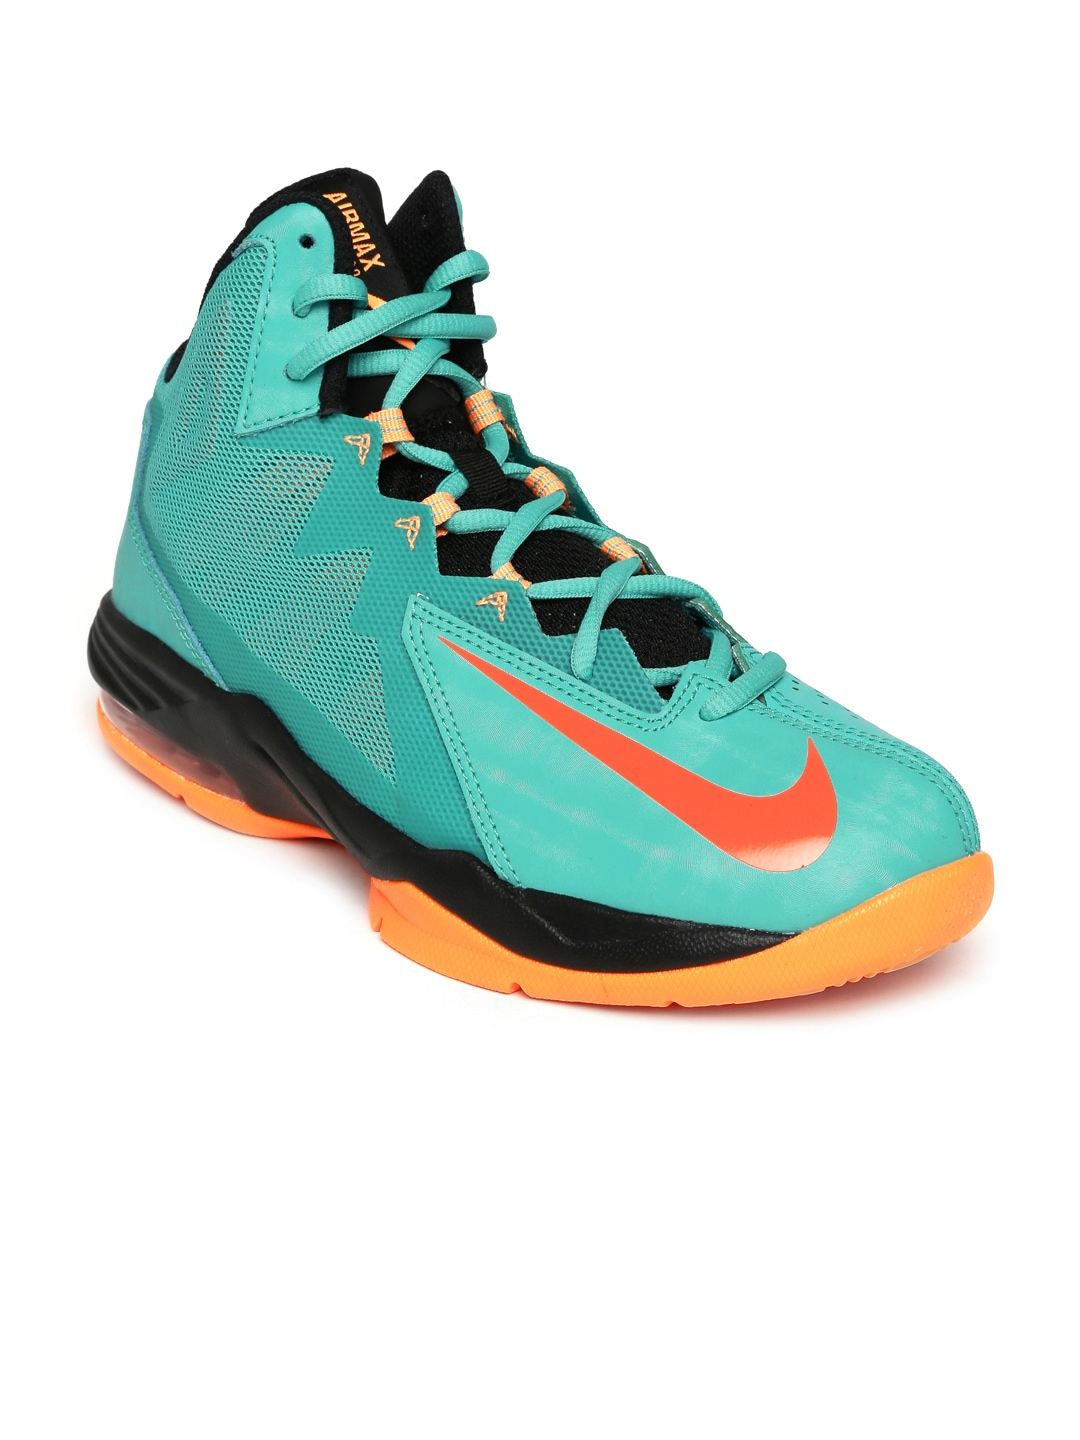 Nike Air Max Stutter Step  Men S Basketball Shoes